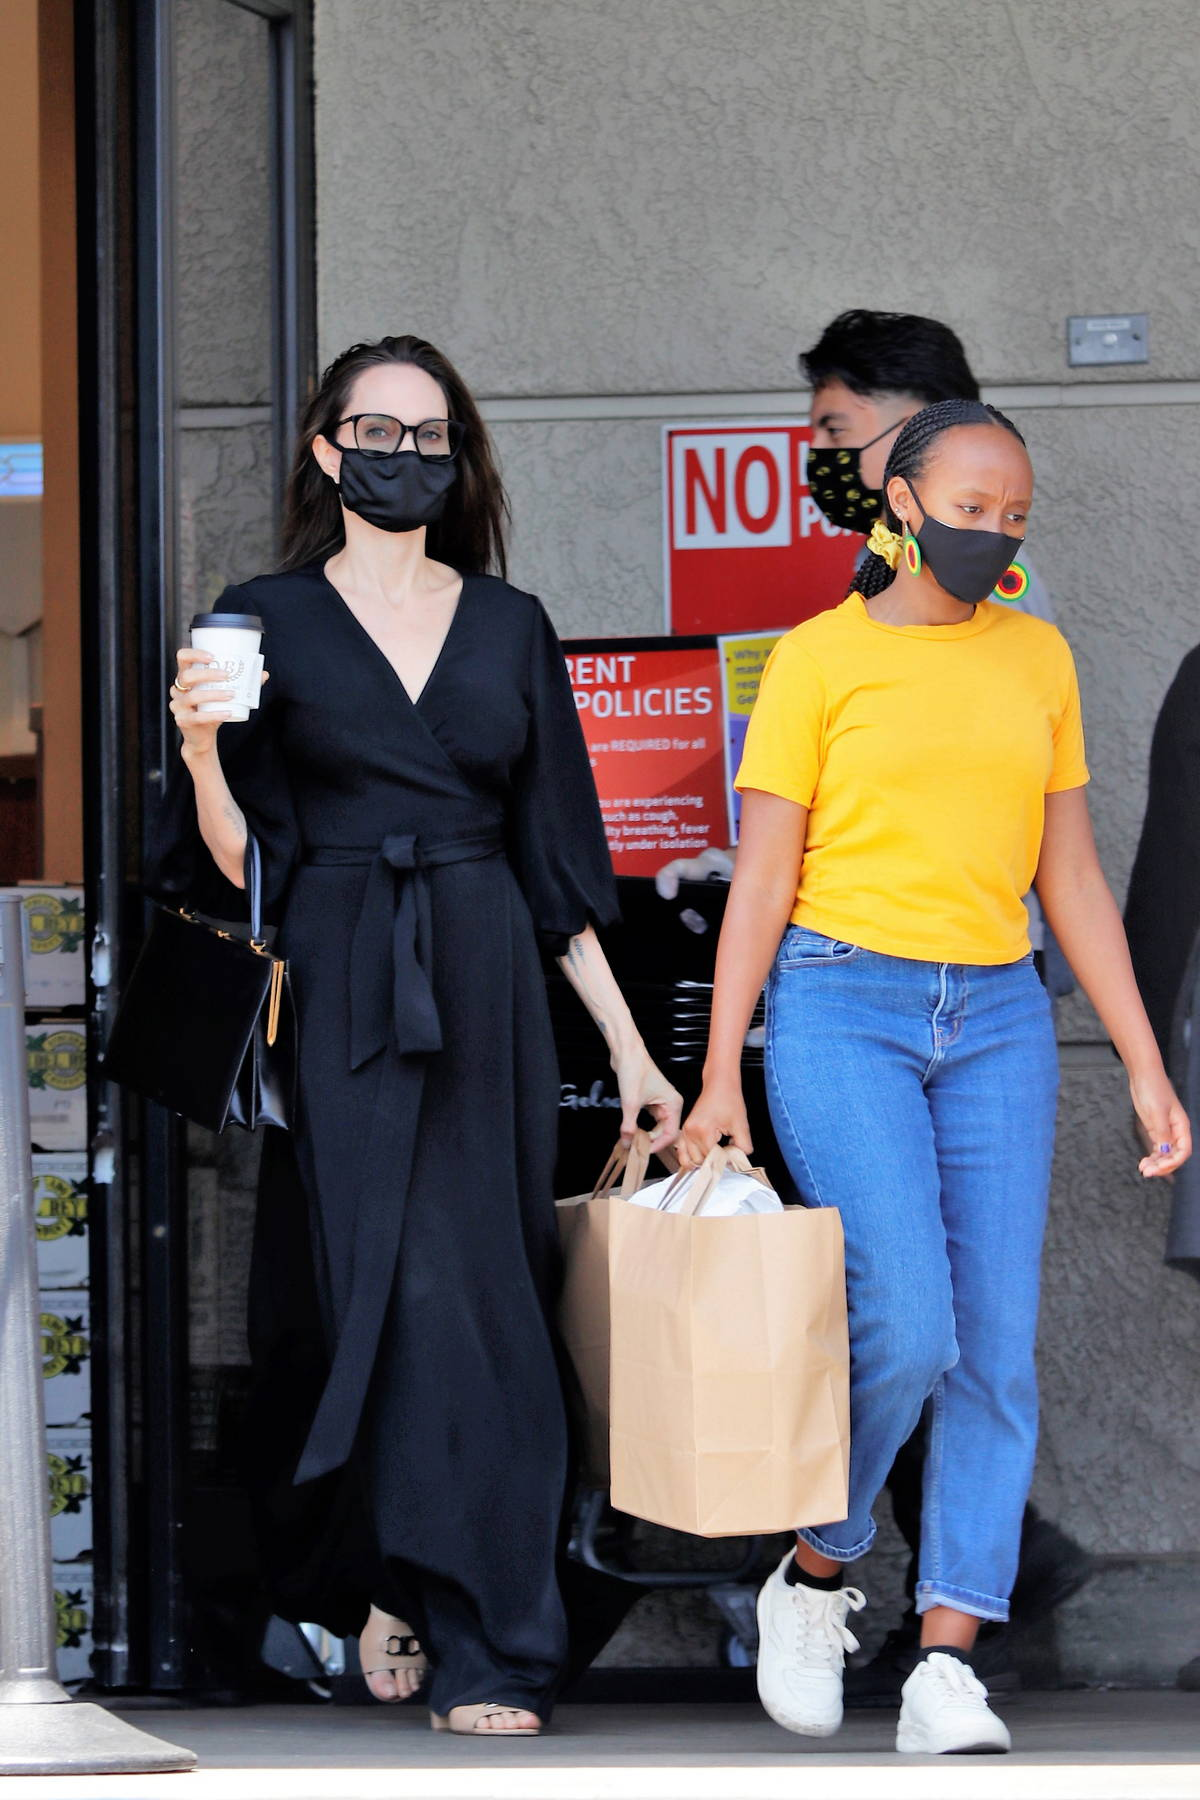 Angelina Jolie looks chic in a black maxi dress while out shopping with her daughter Zahara in Los Angeles